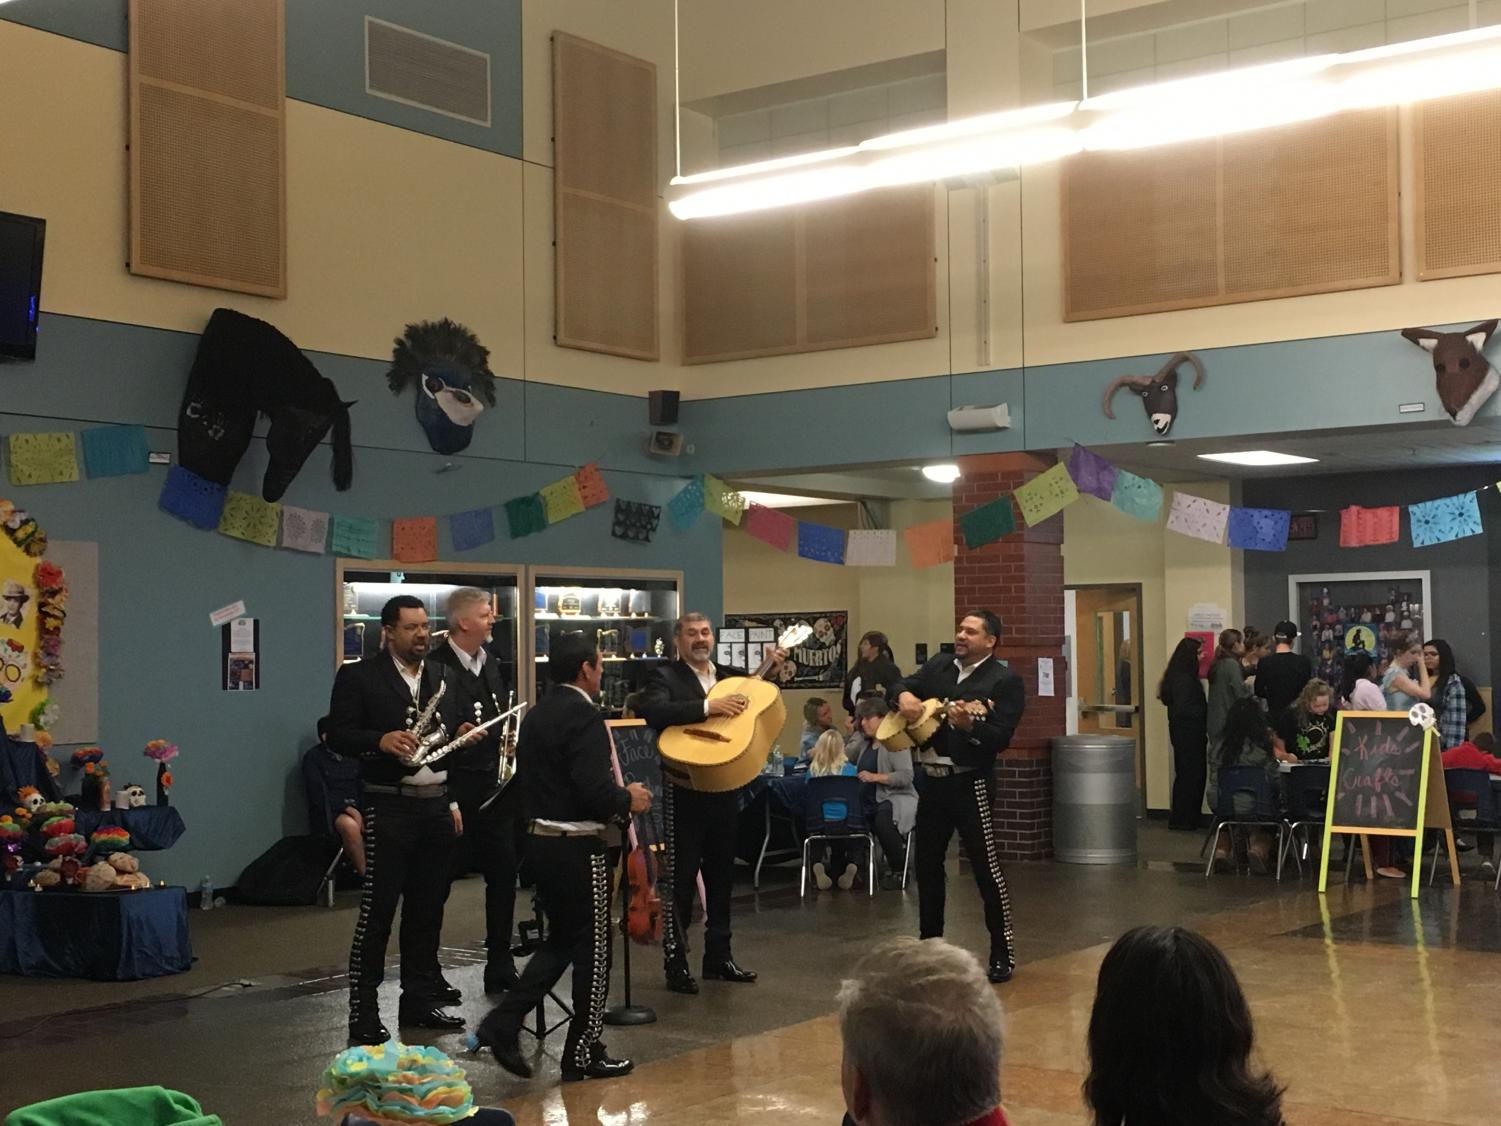 A mariachi band performs at the Dia de los Muertos celebration at Wilsonville High School. The celebration had quite a few students of our own in attendance.